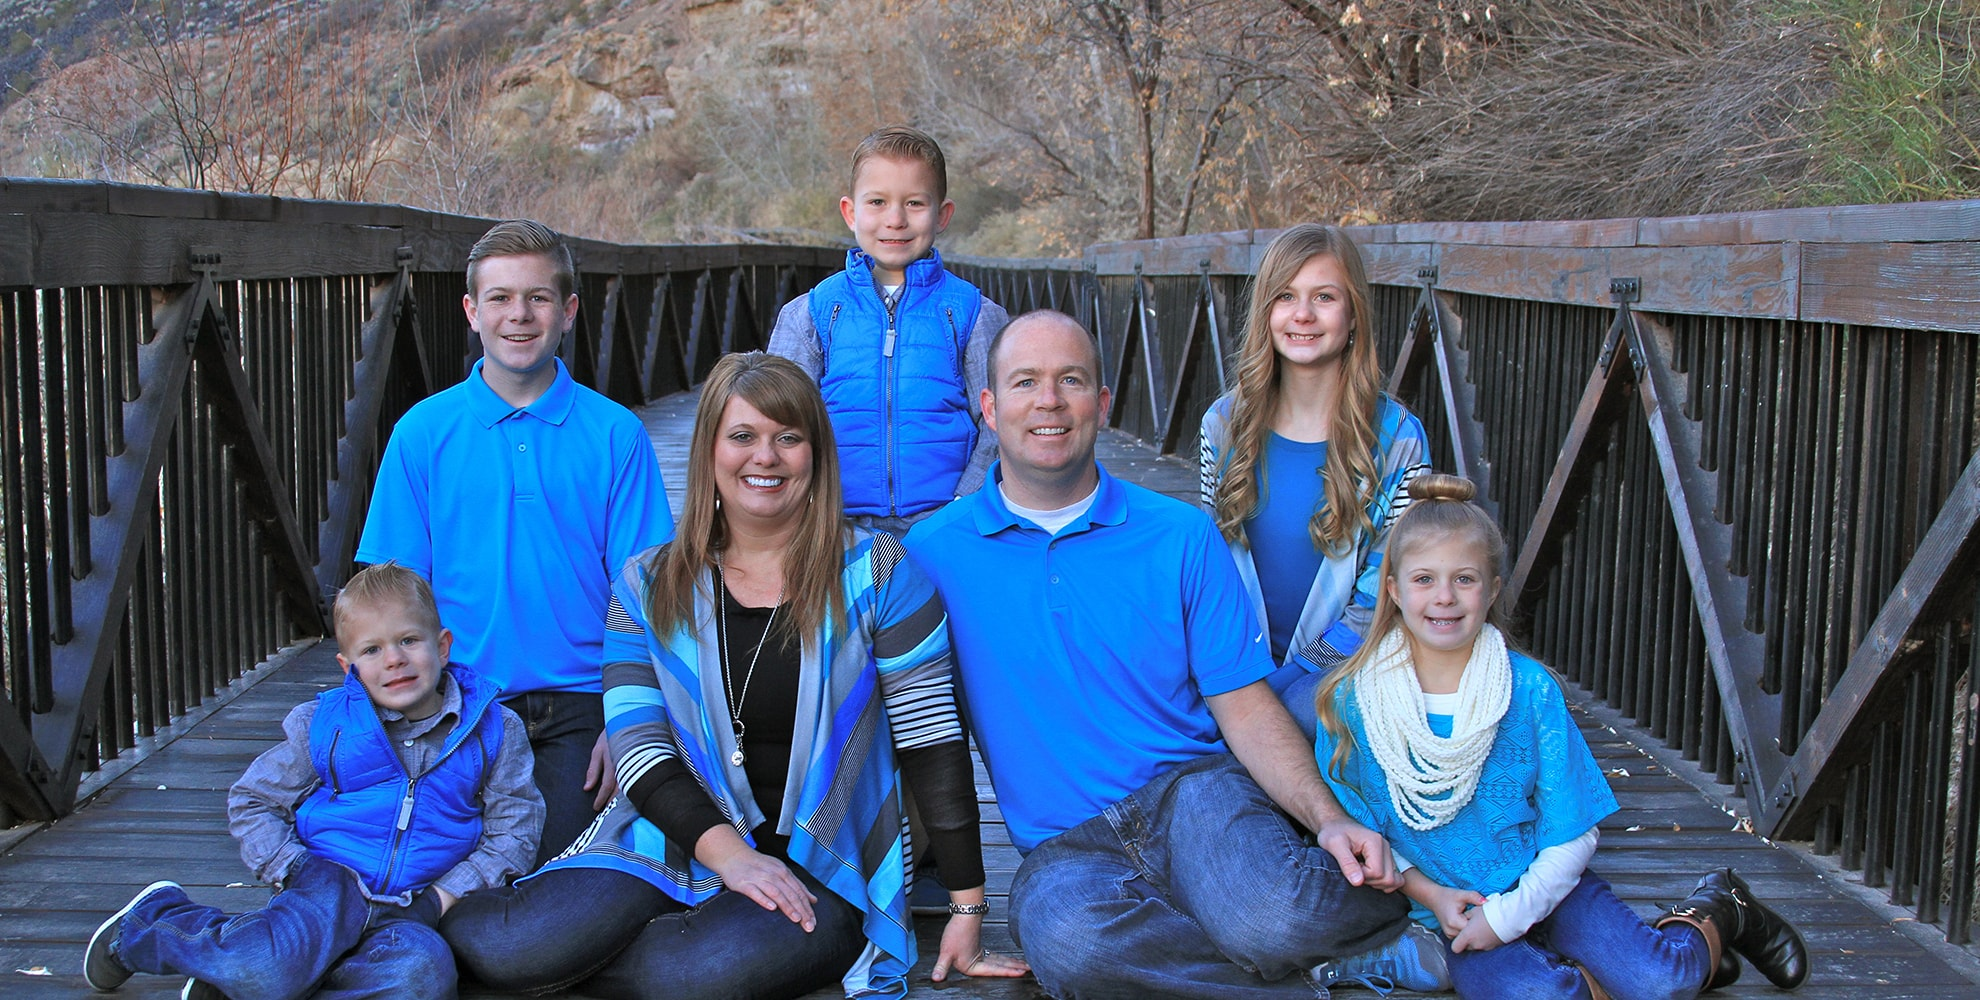 Dr. Thad Twiss and his family